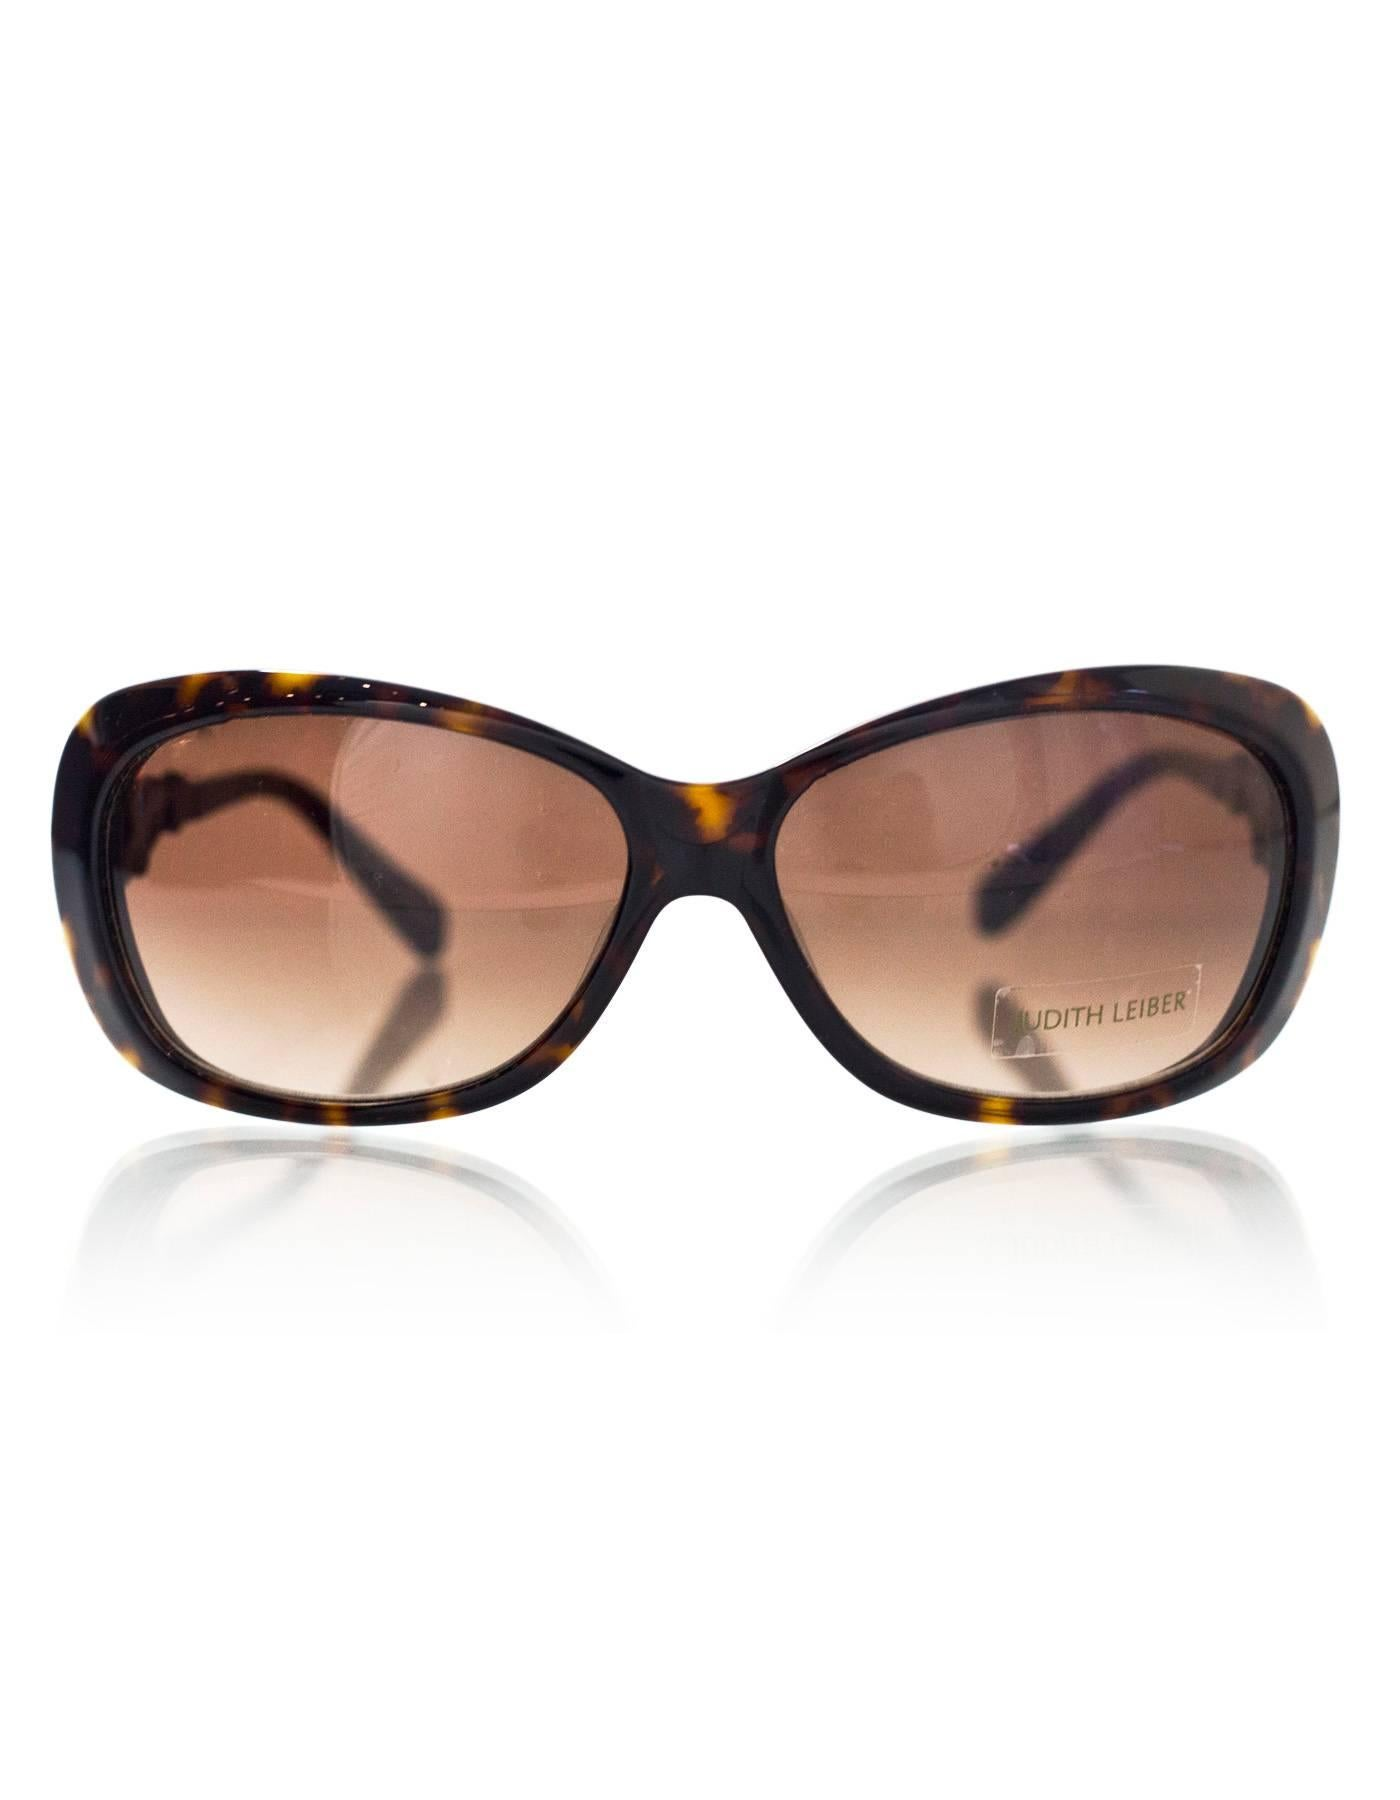 a963a9406089 Judith Leiber JL1619 Brown Tortoise Swarovski Crystal Sunglasses rt.  620  at 1stdibs